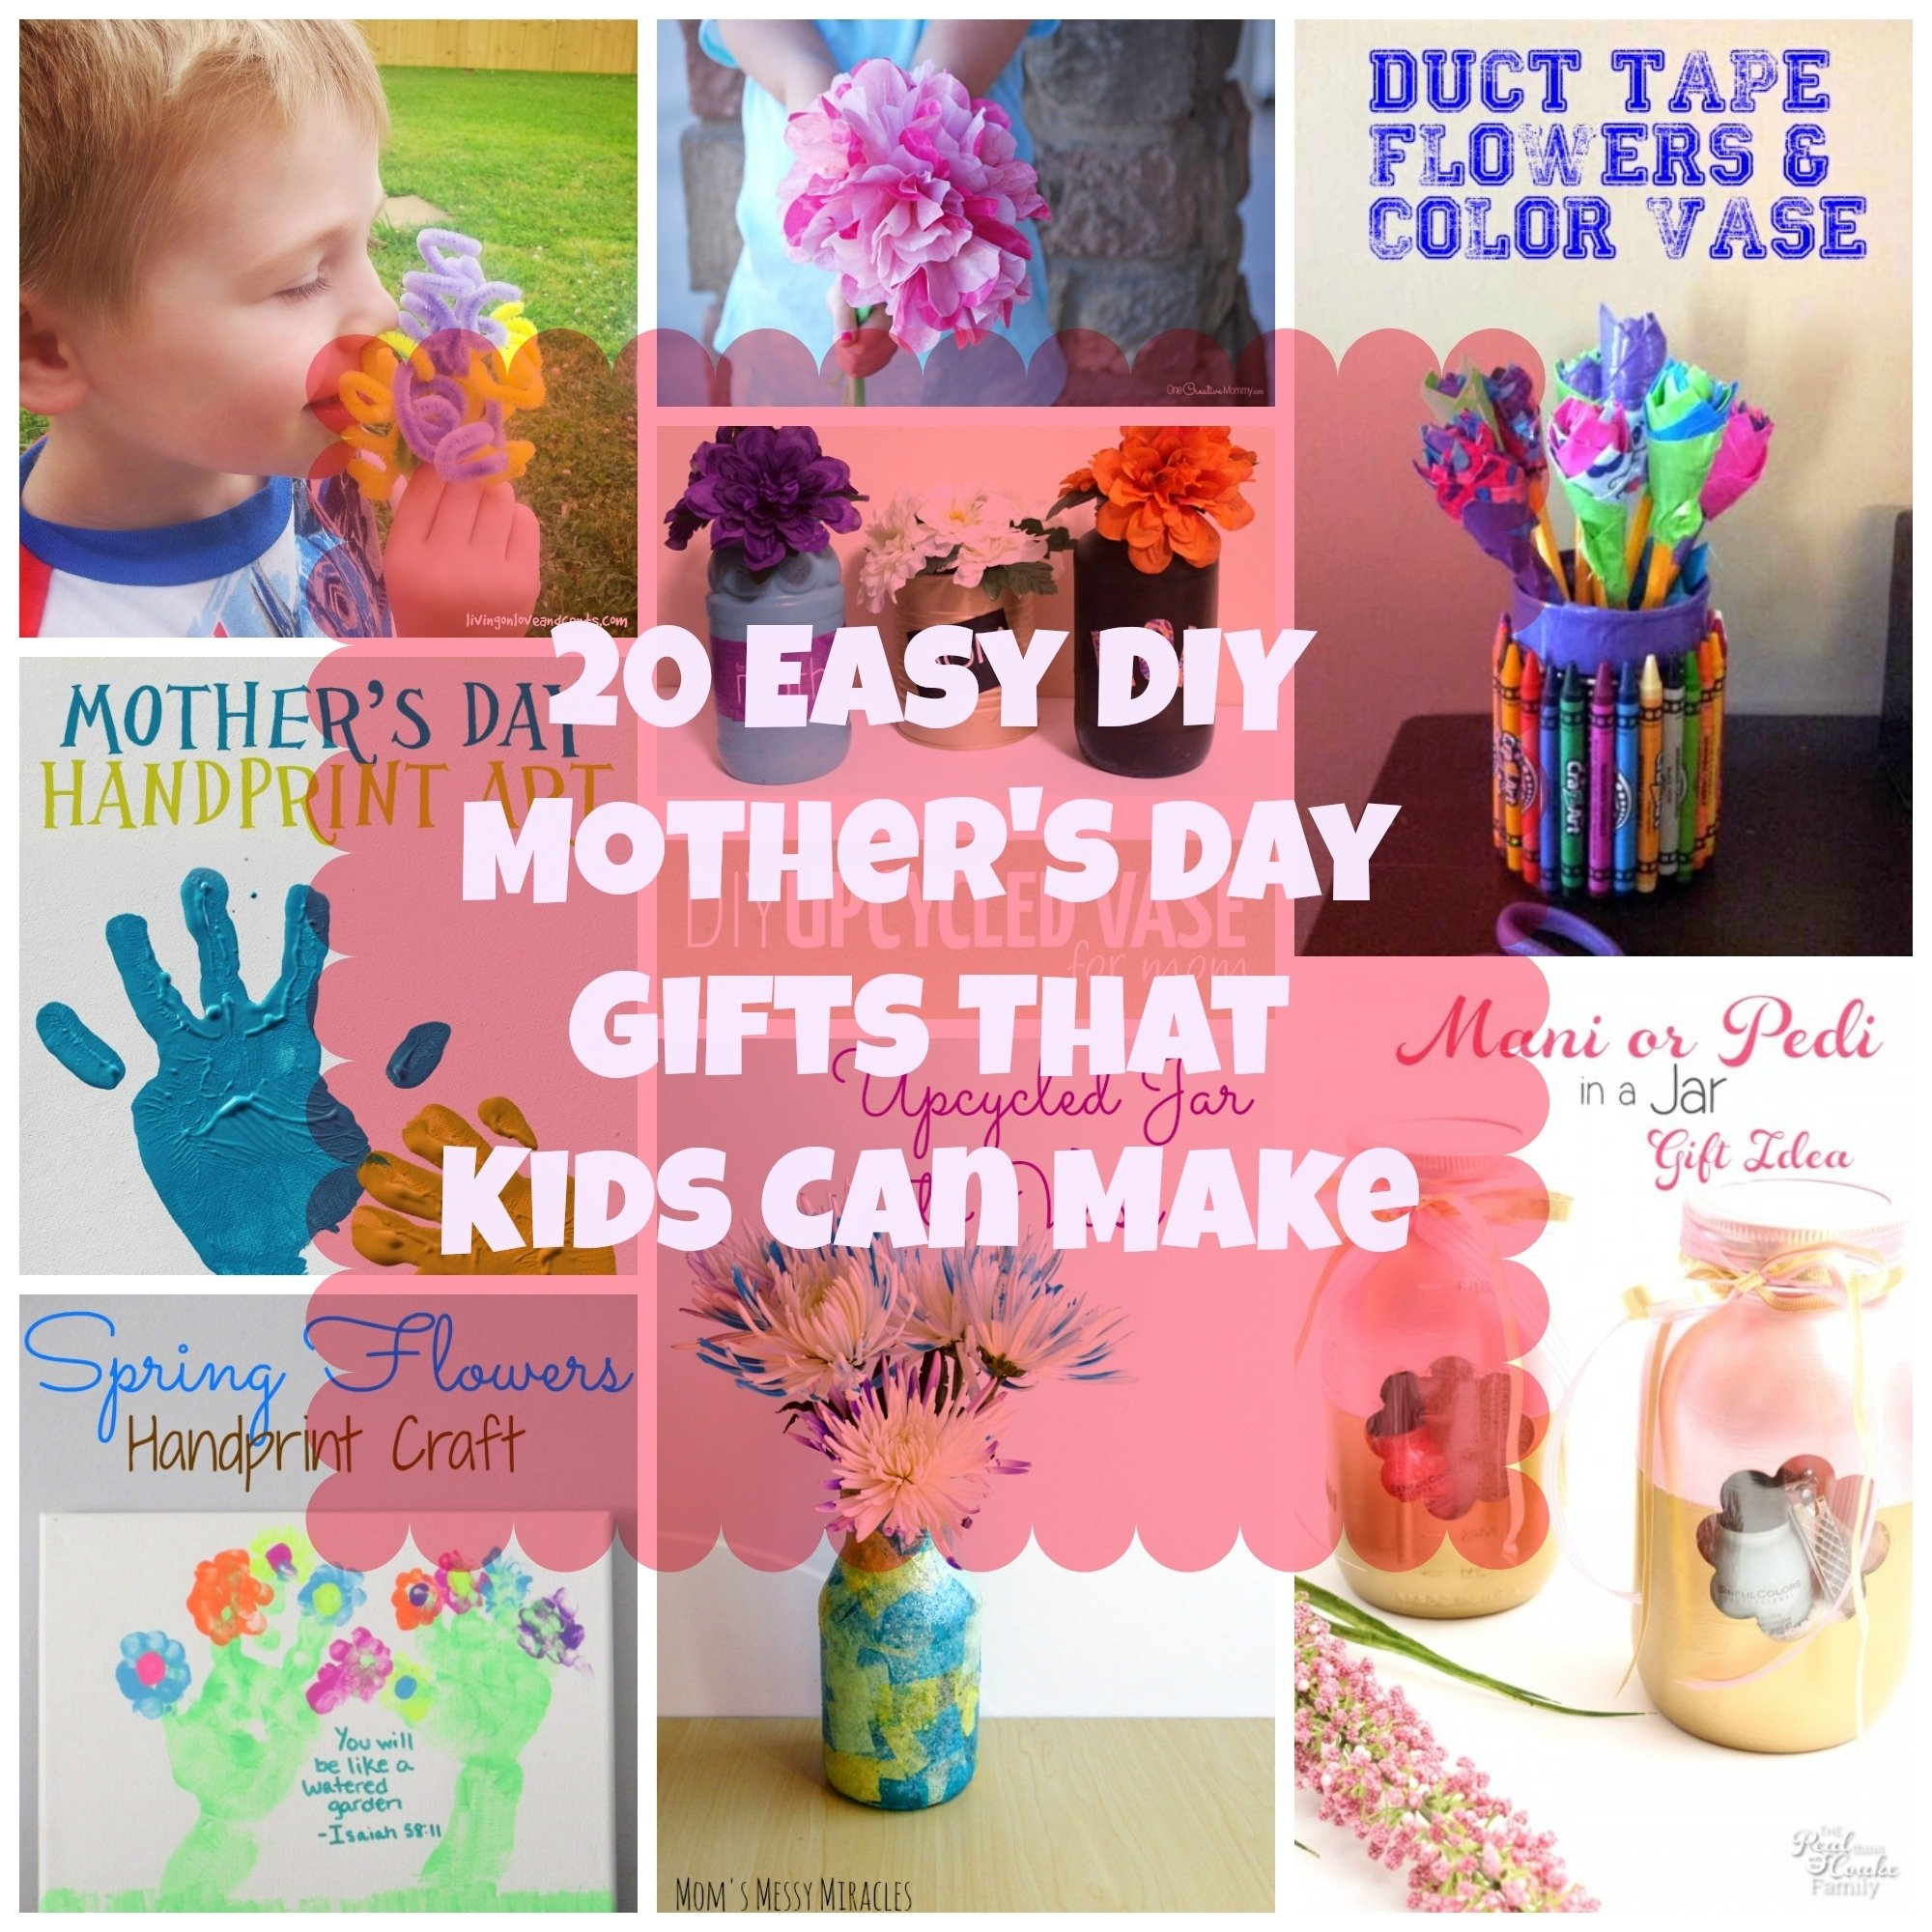 10 Most Popular Gift Ideas For Kids To Make 20 easy diy mothers day gifts that kids can make loversiq 2 2021